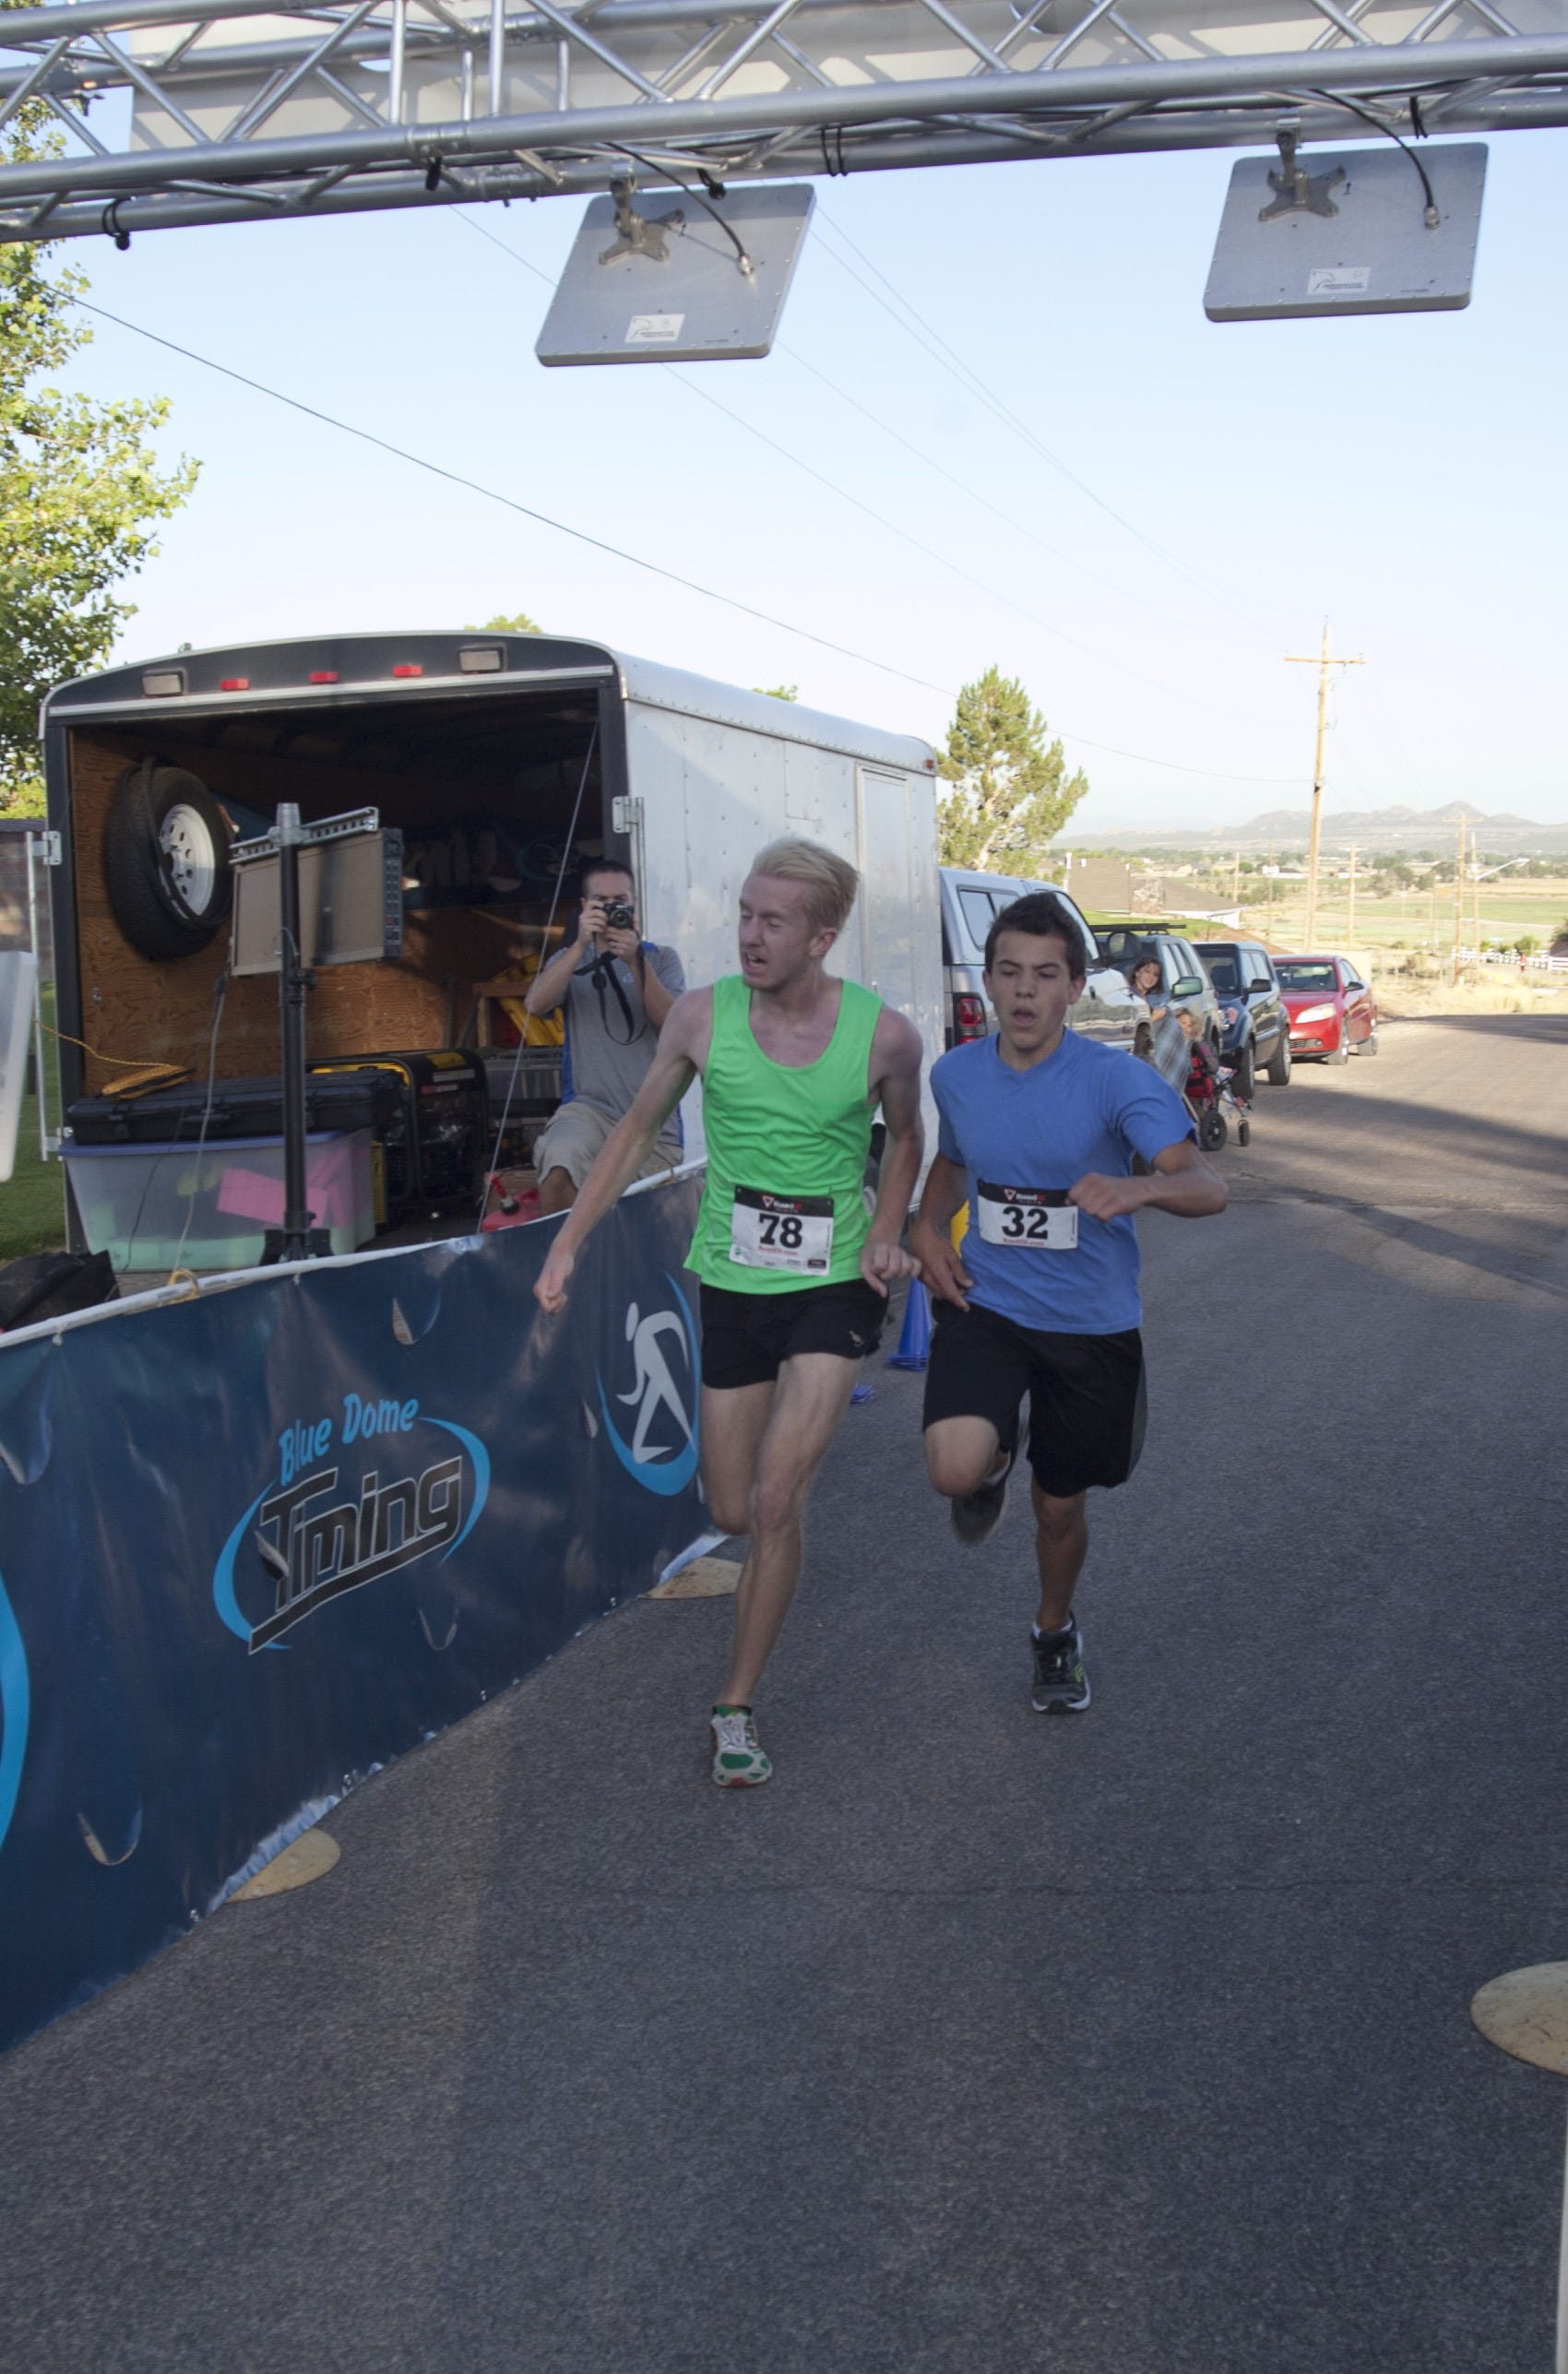 Coming Tuesday: Races in Southern Utah that runners won't want to miss